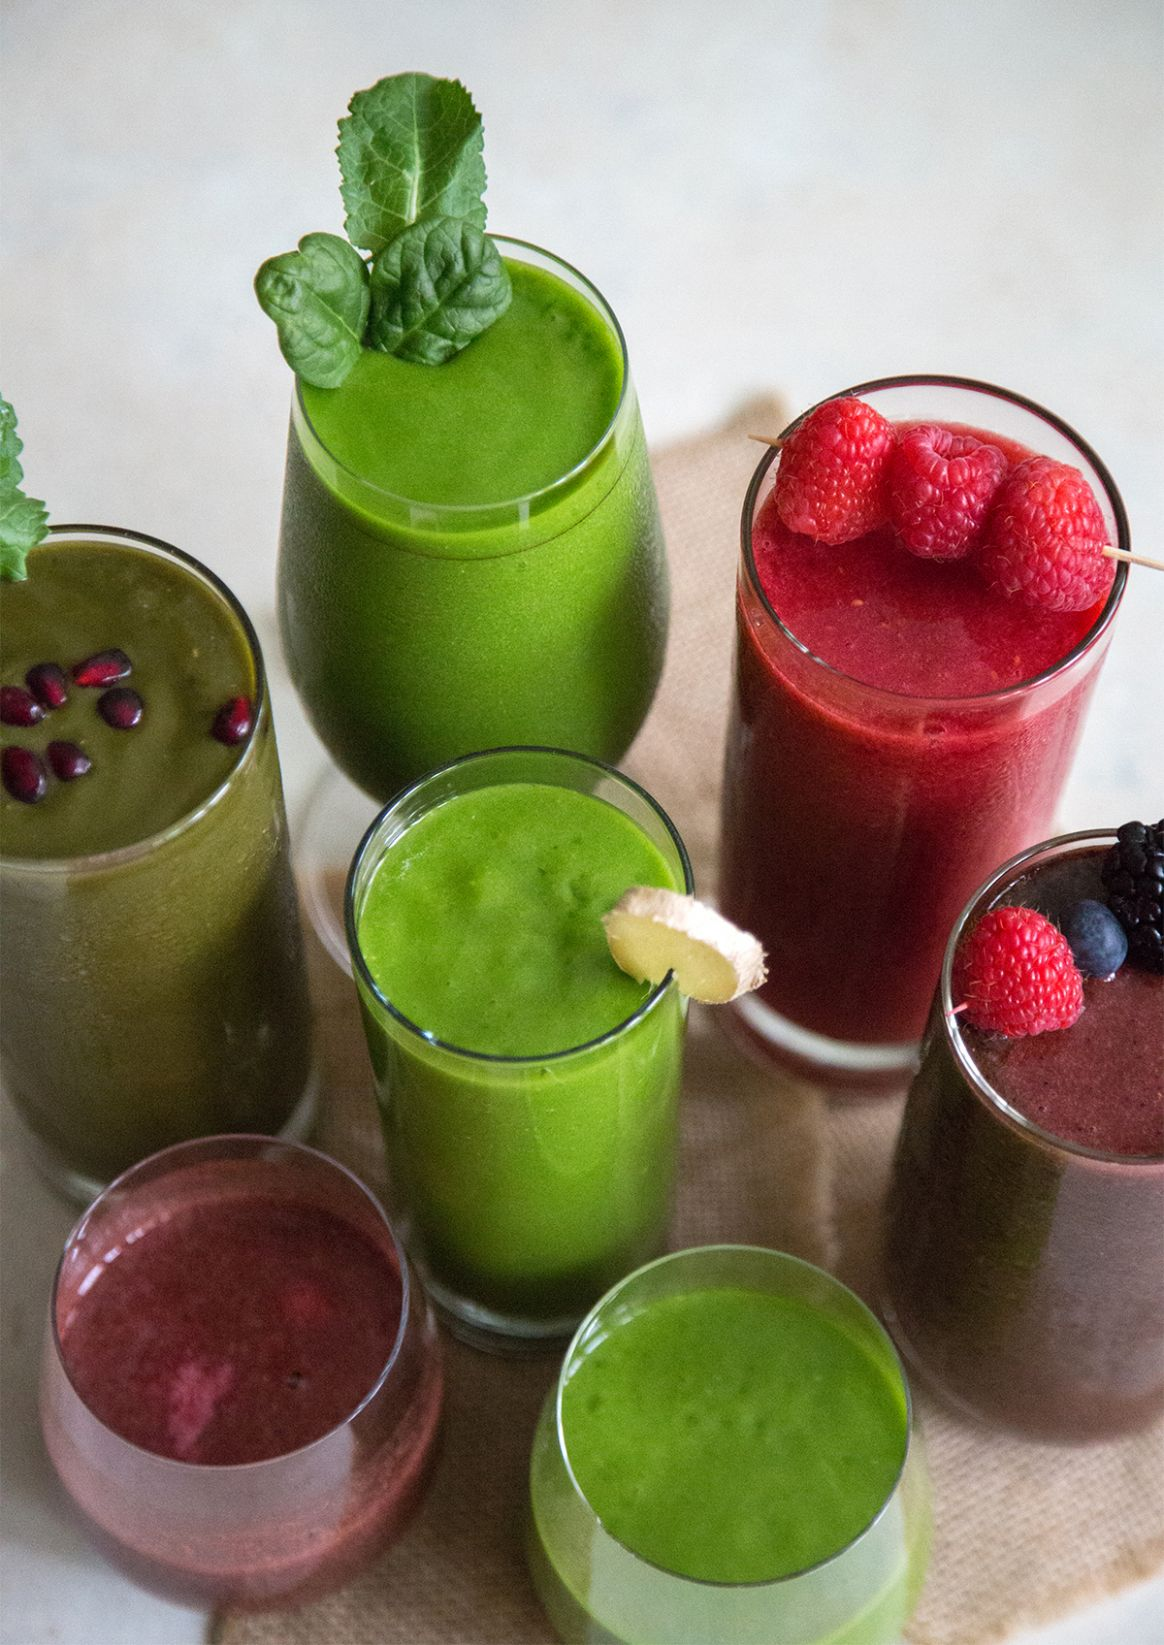 12 Fruit and Veggie Smoothies (A Week of Smoothies)